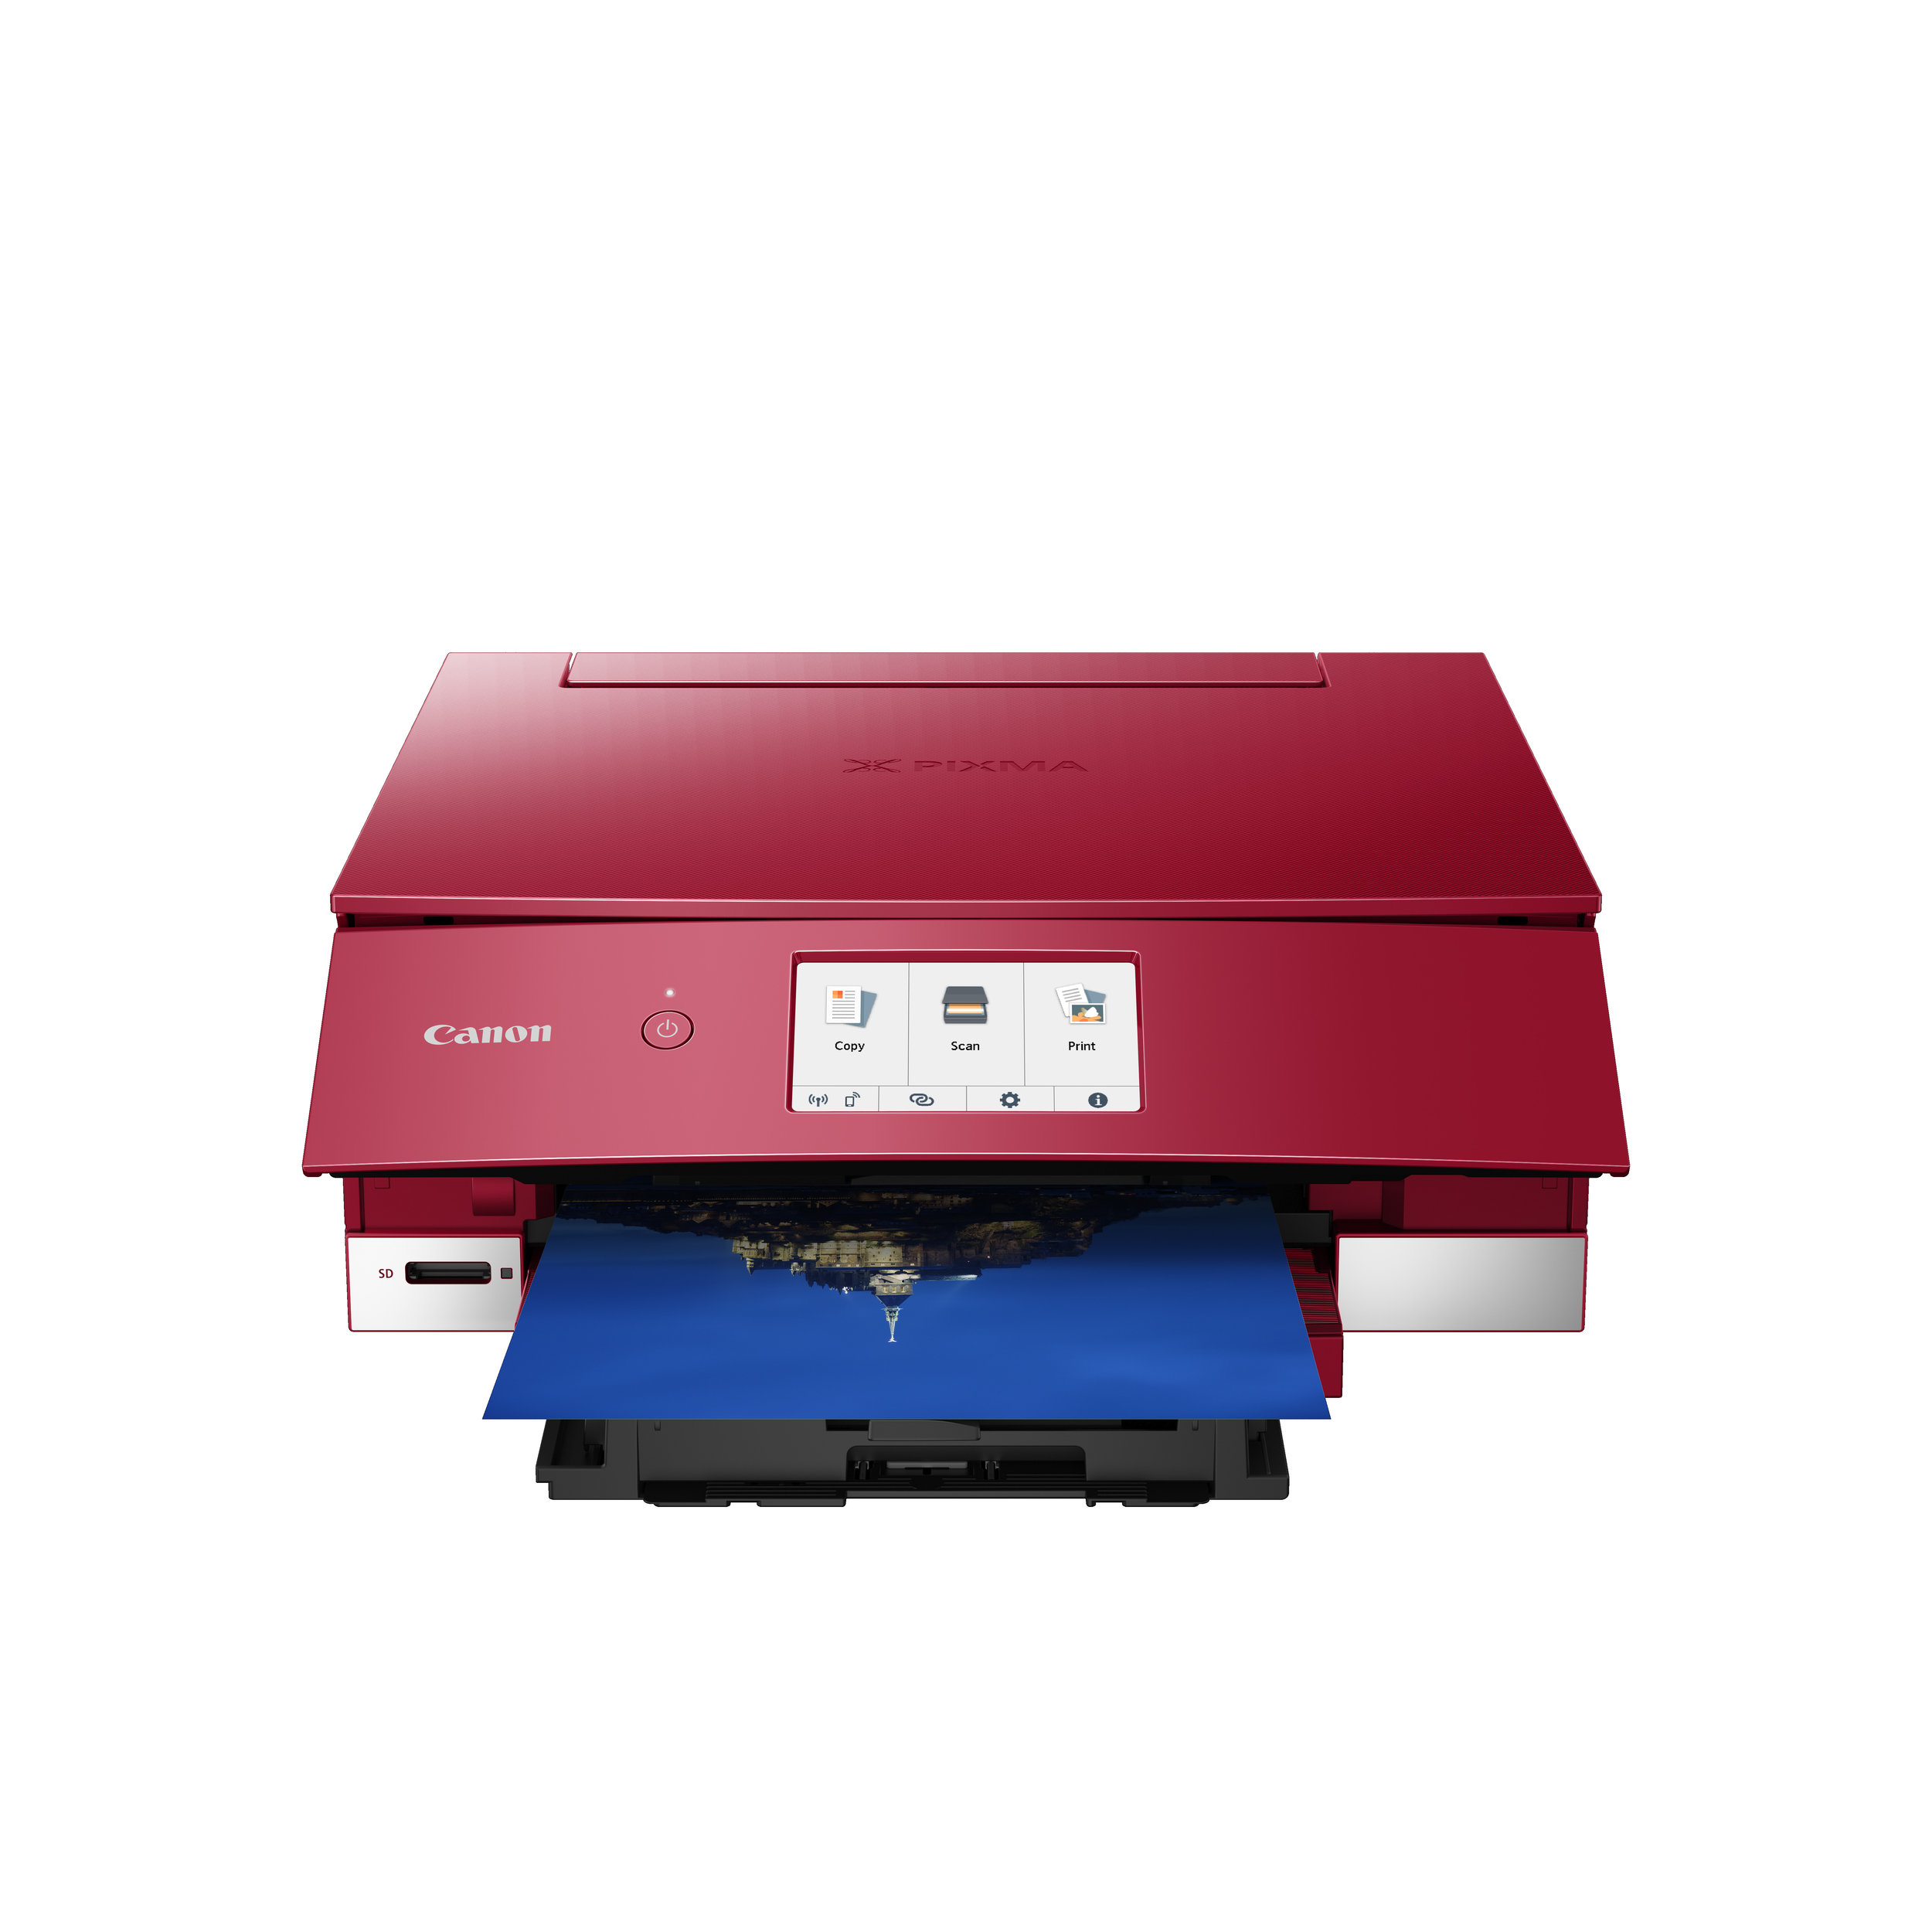 PIXMA TS8350 EUR Paper try out RED FRA.jpg